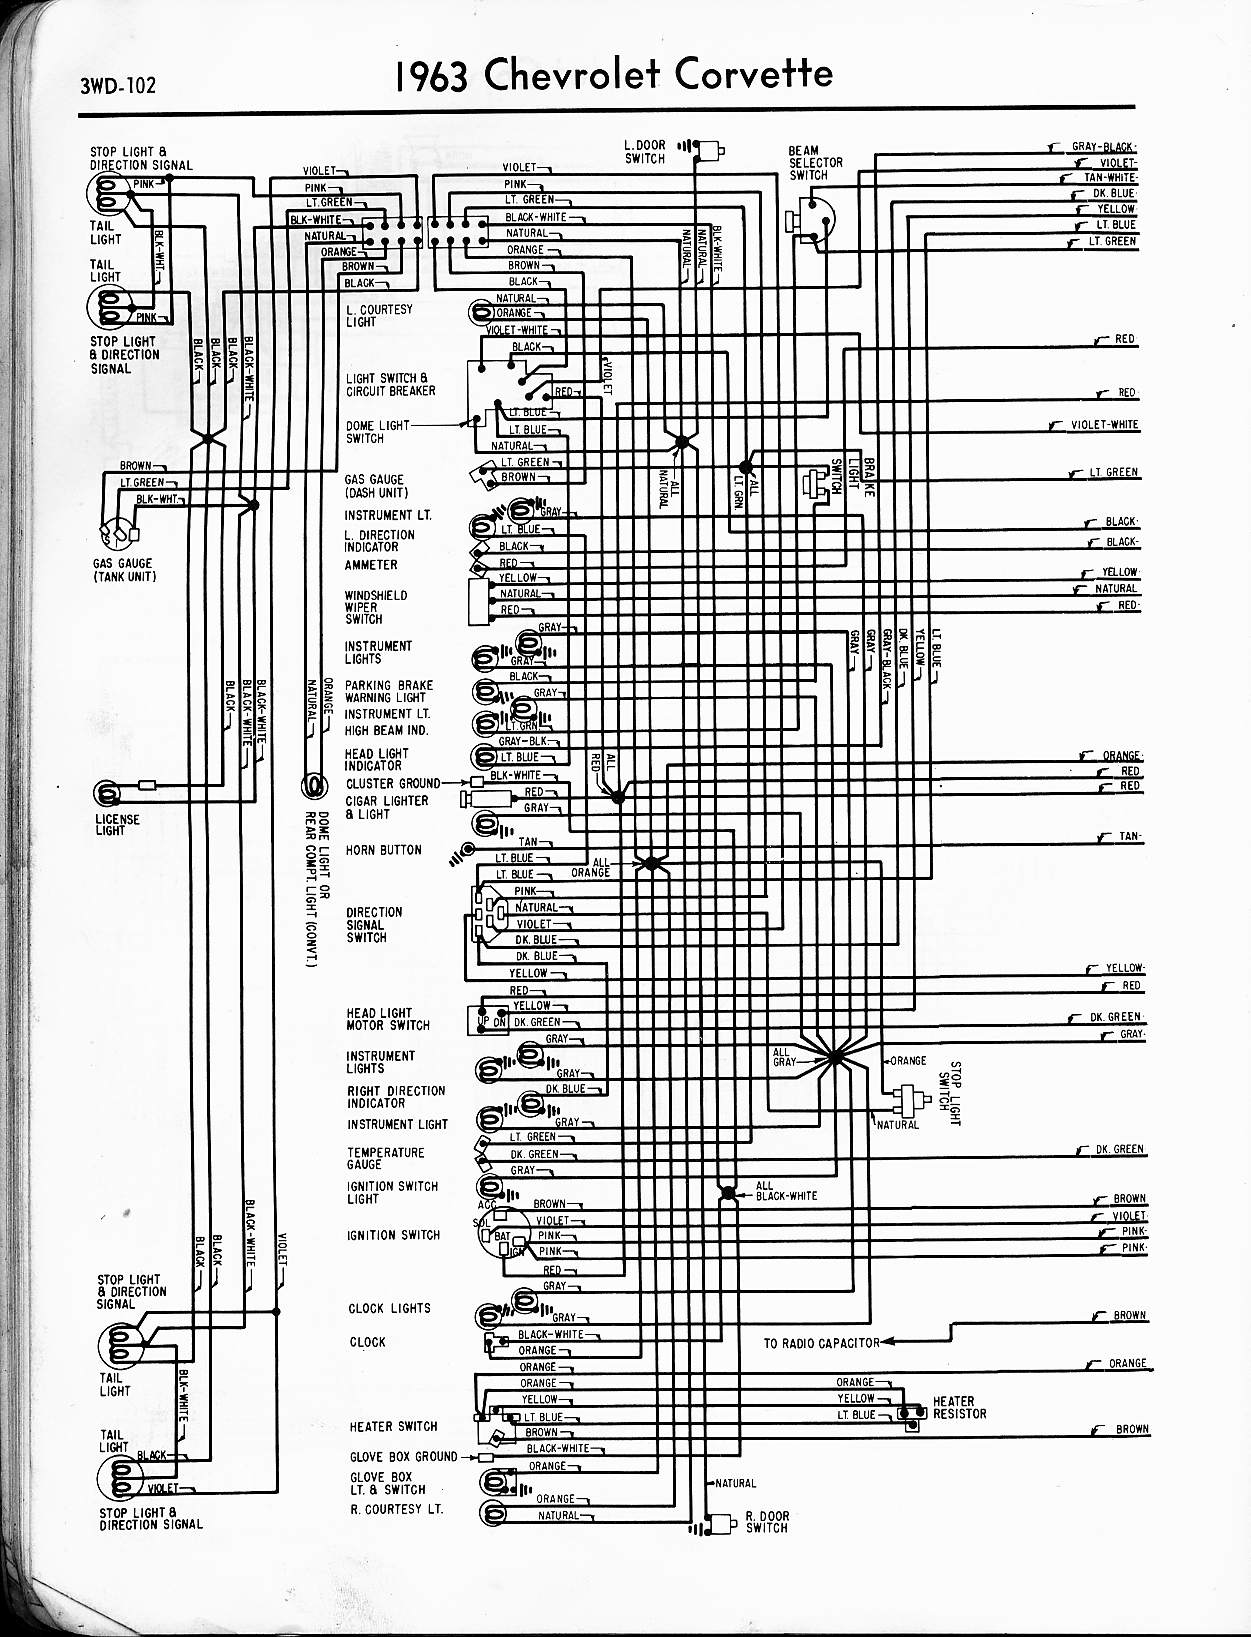 MWireChev63_3WD 102 57 65 chevy wiring diagrams 66 Corvette at crackthecode.co